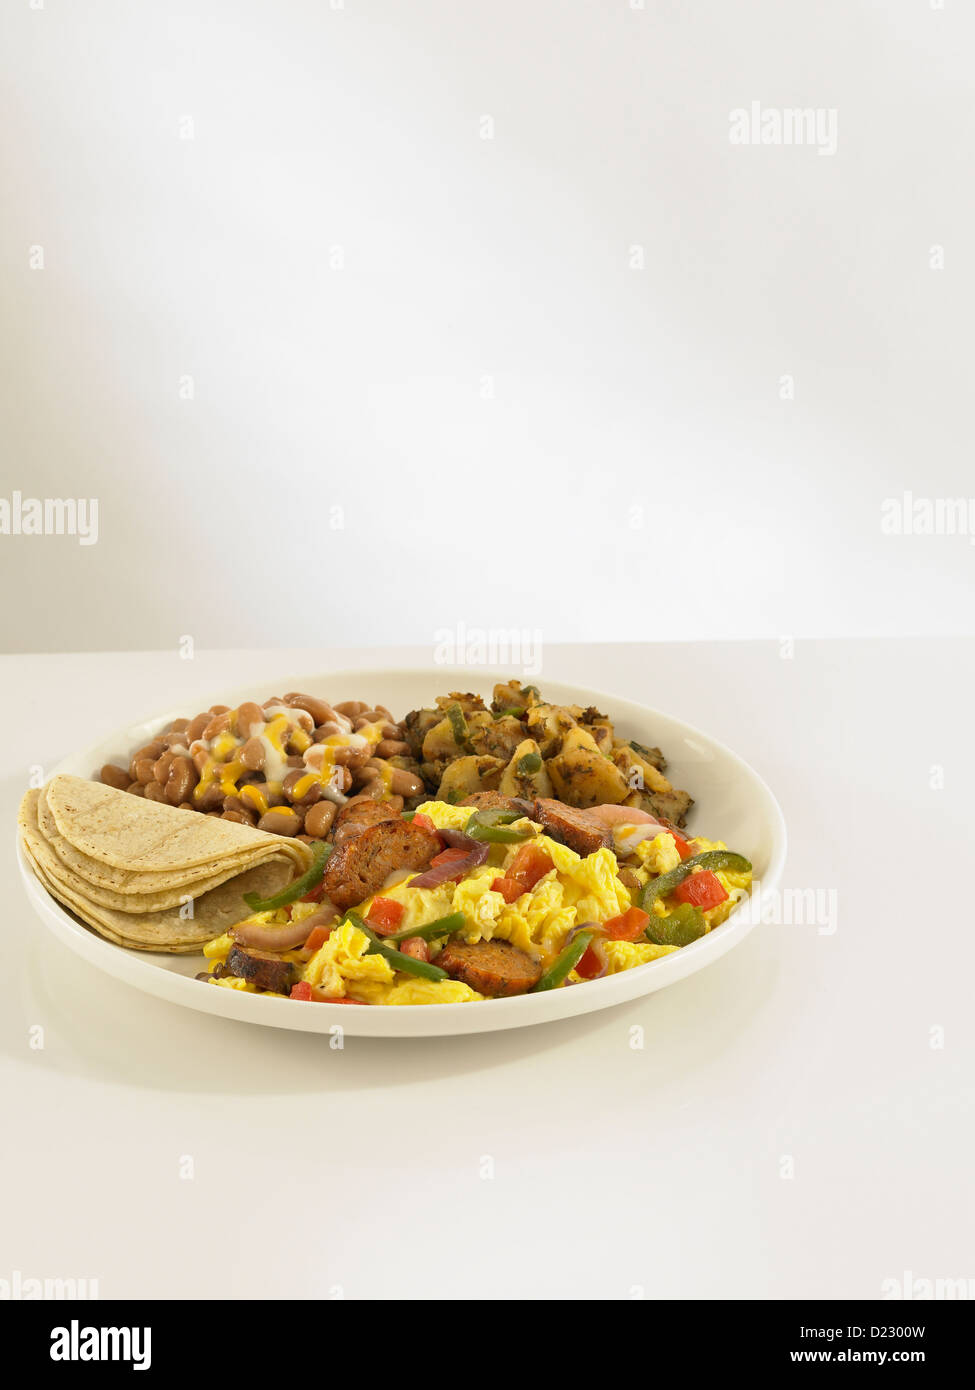 Mexican egg scramble with sausage and tortillas - Stock Image